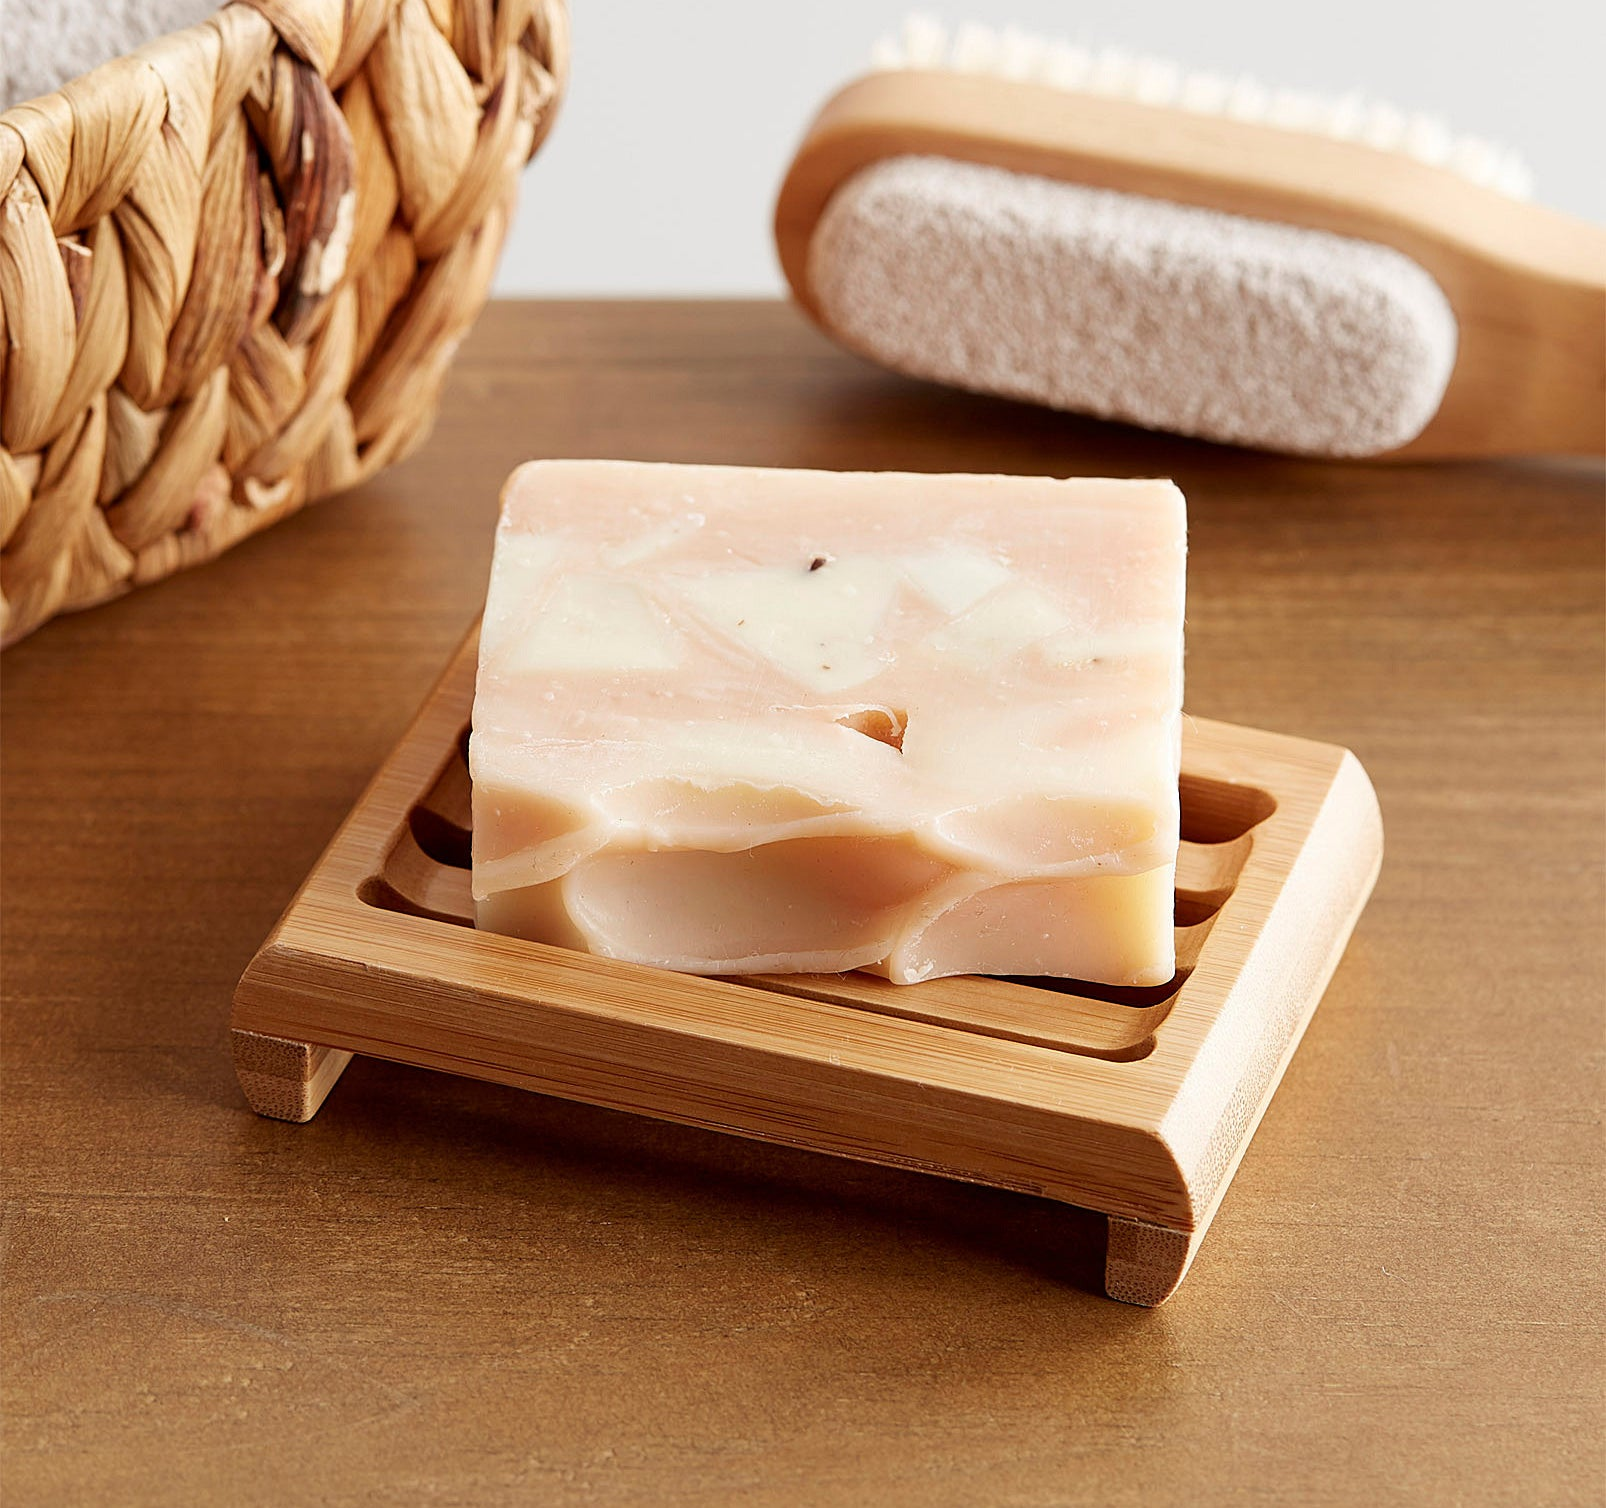 A bar of soap on the bamboo dish